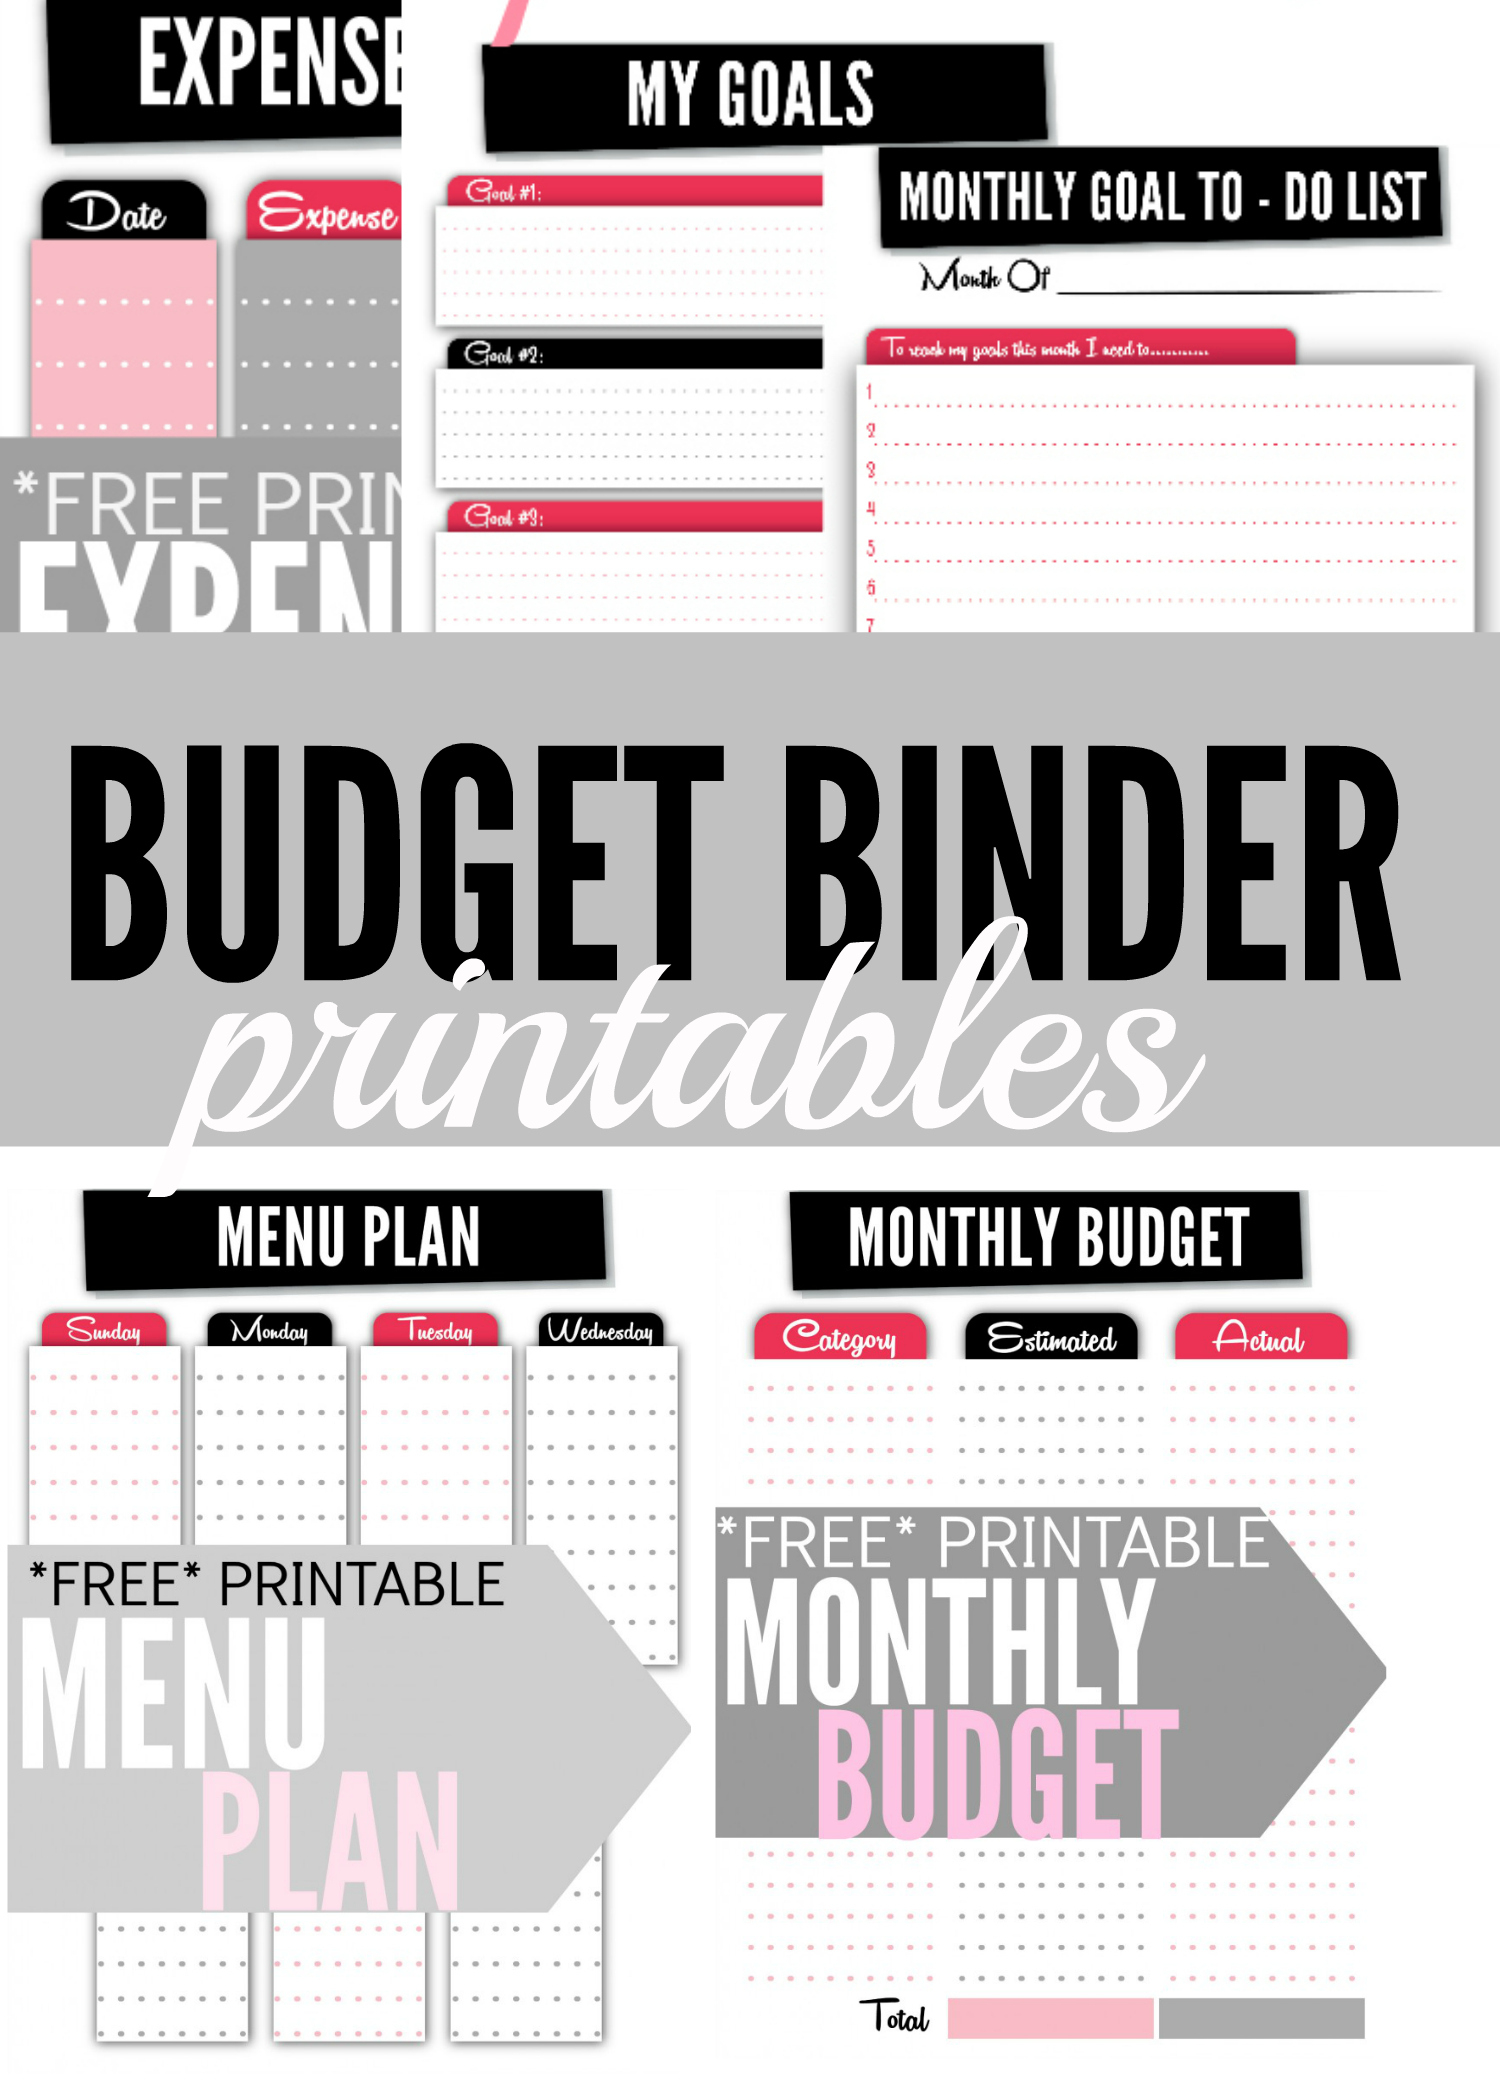 Budget Binder Printables - Single Moms Income - Free Printable Financial Binder